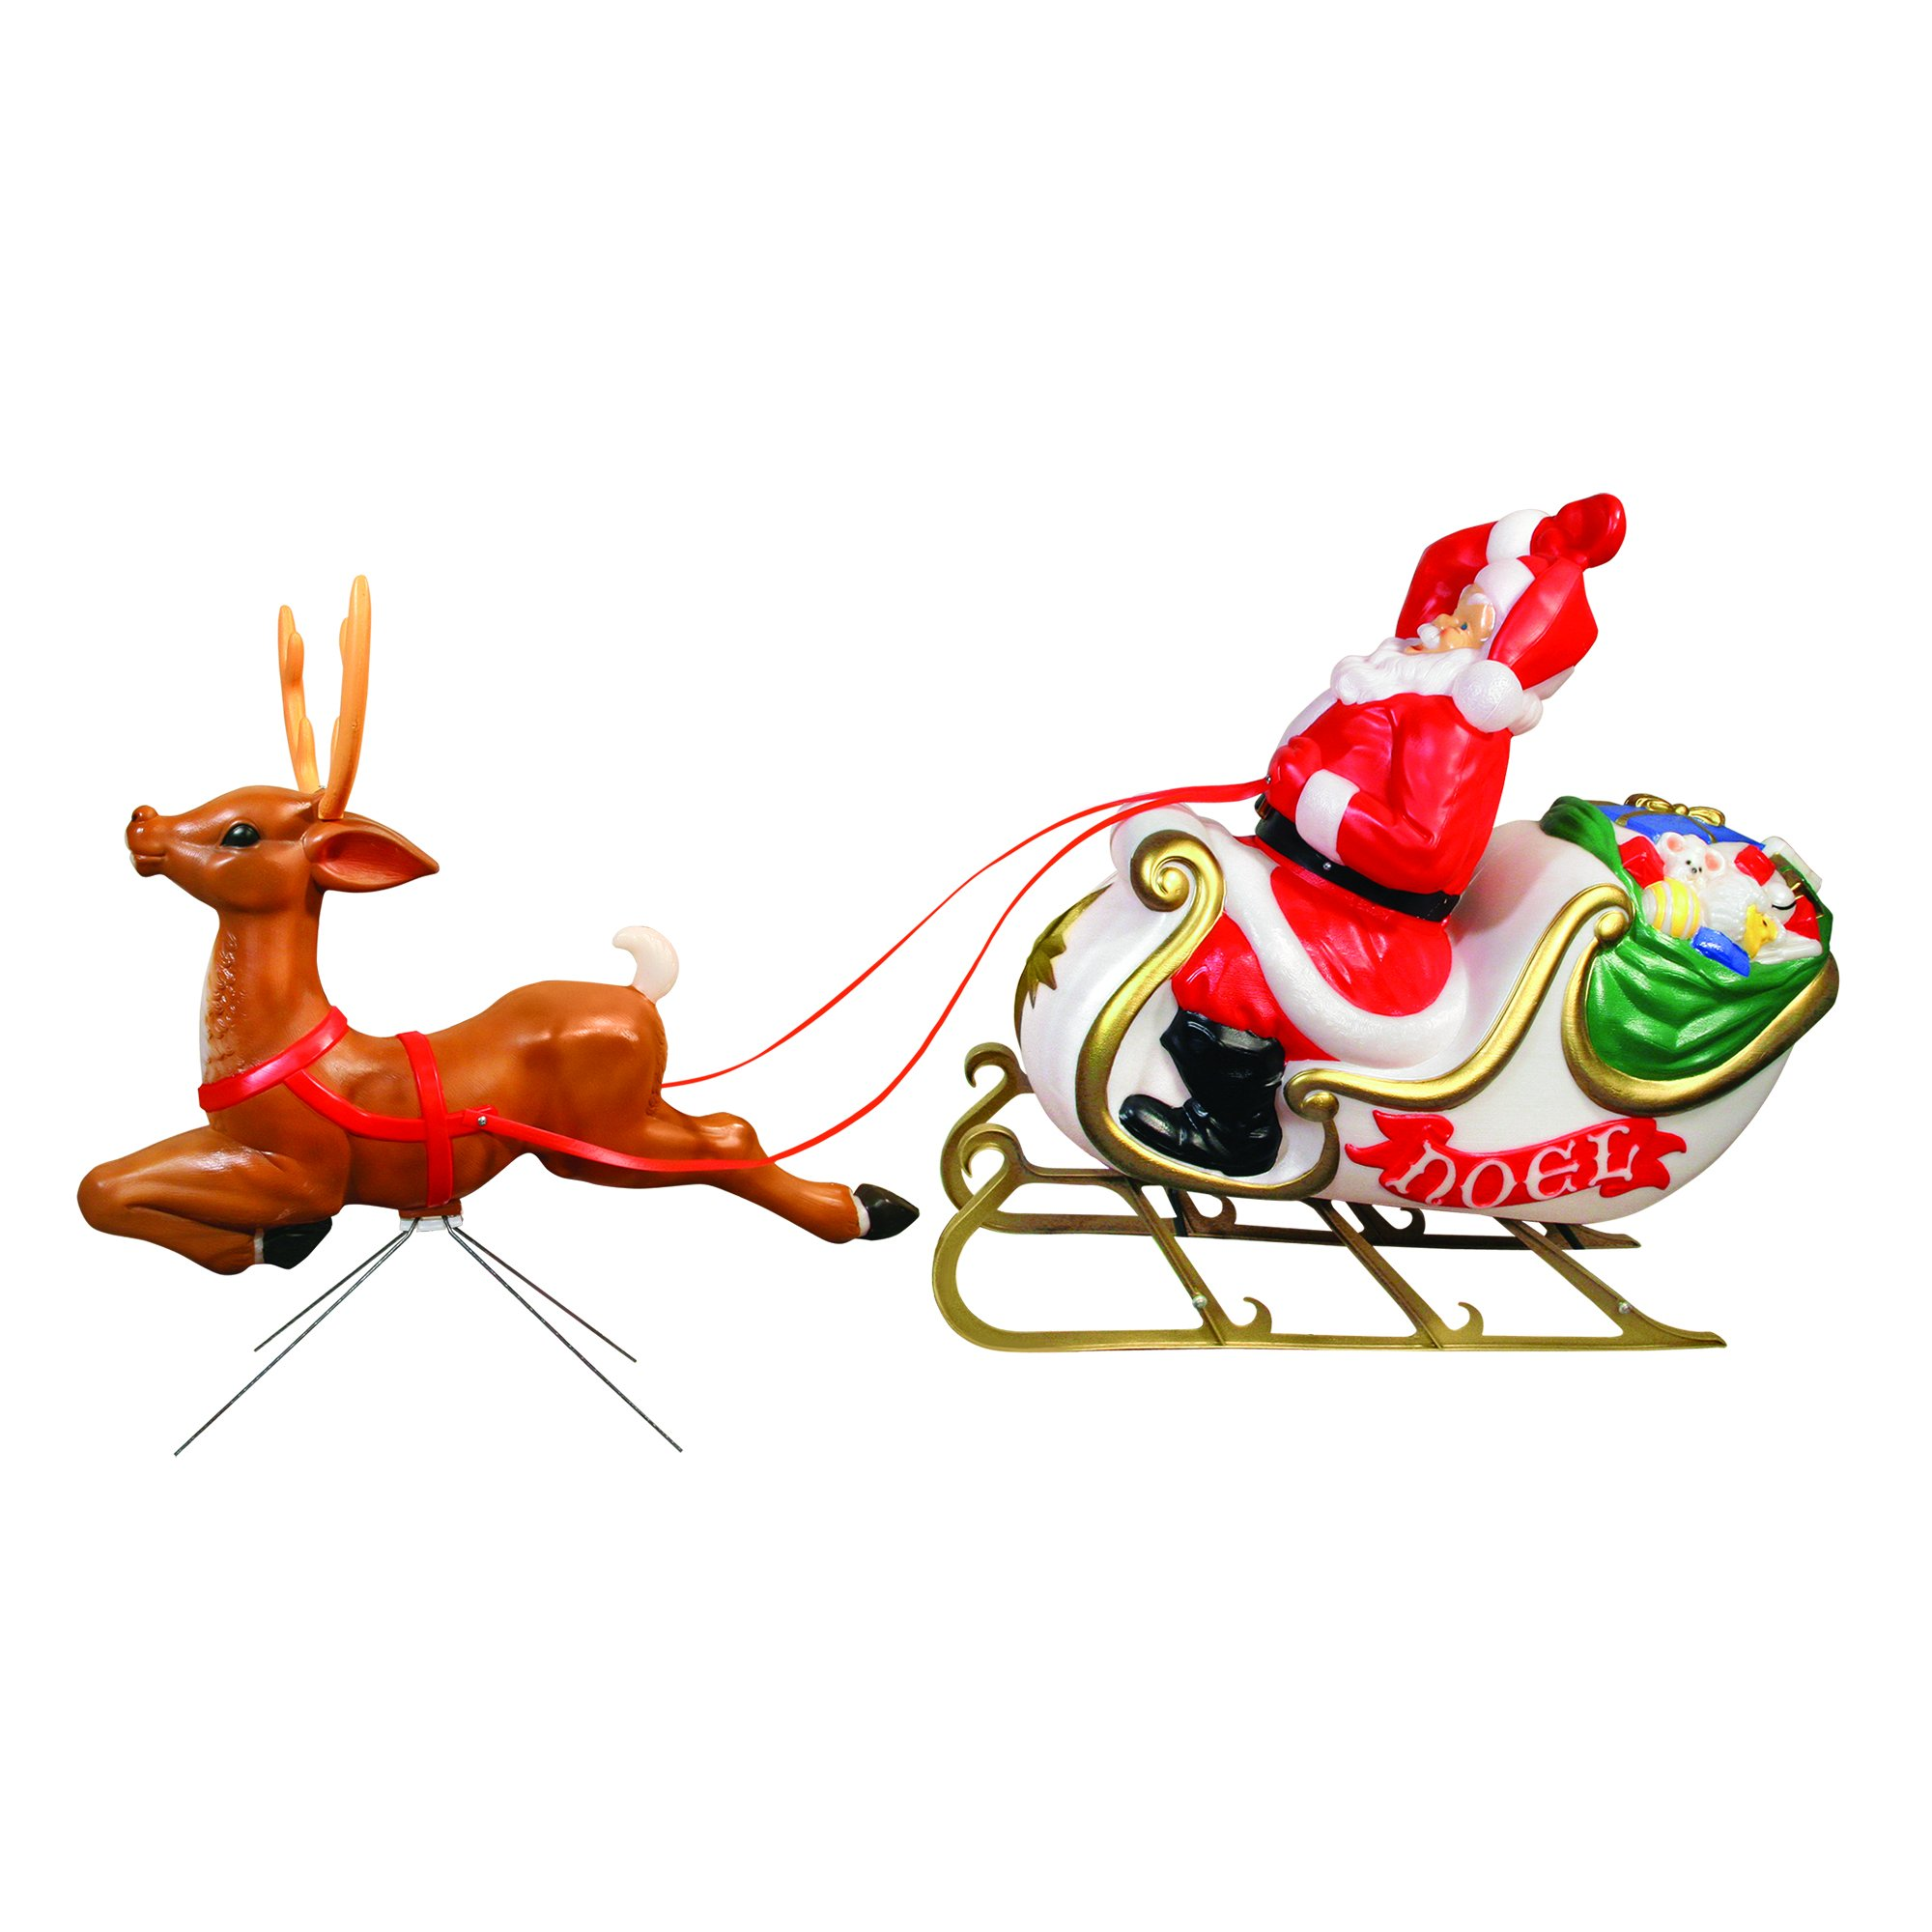 Santa with Sleigh and Reindeer by General Foam Plastics